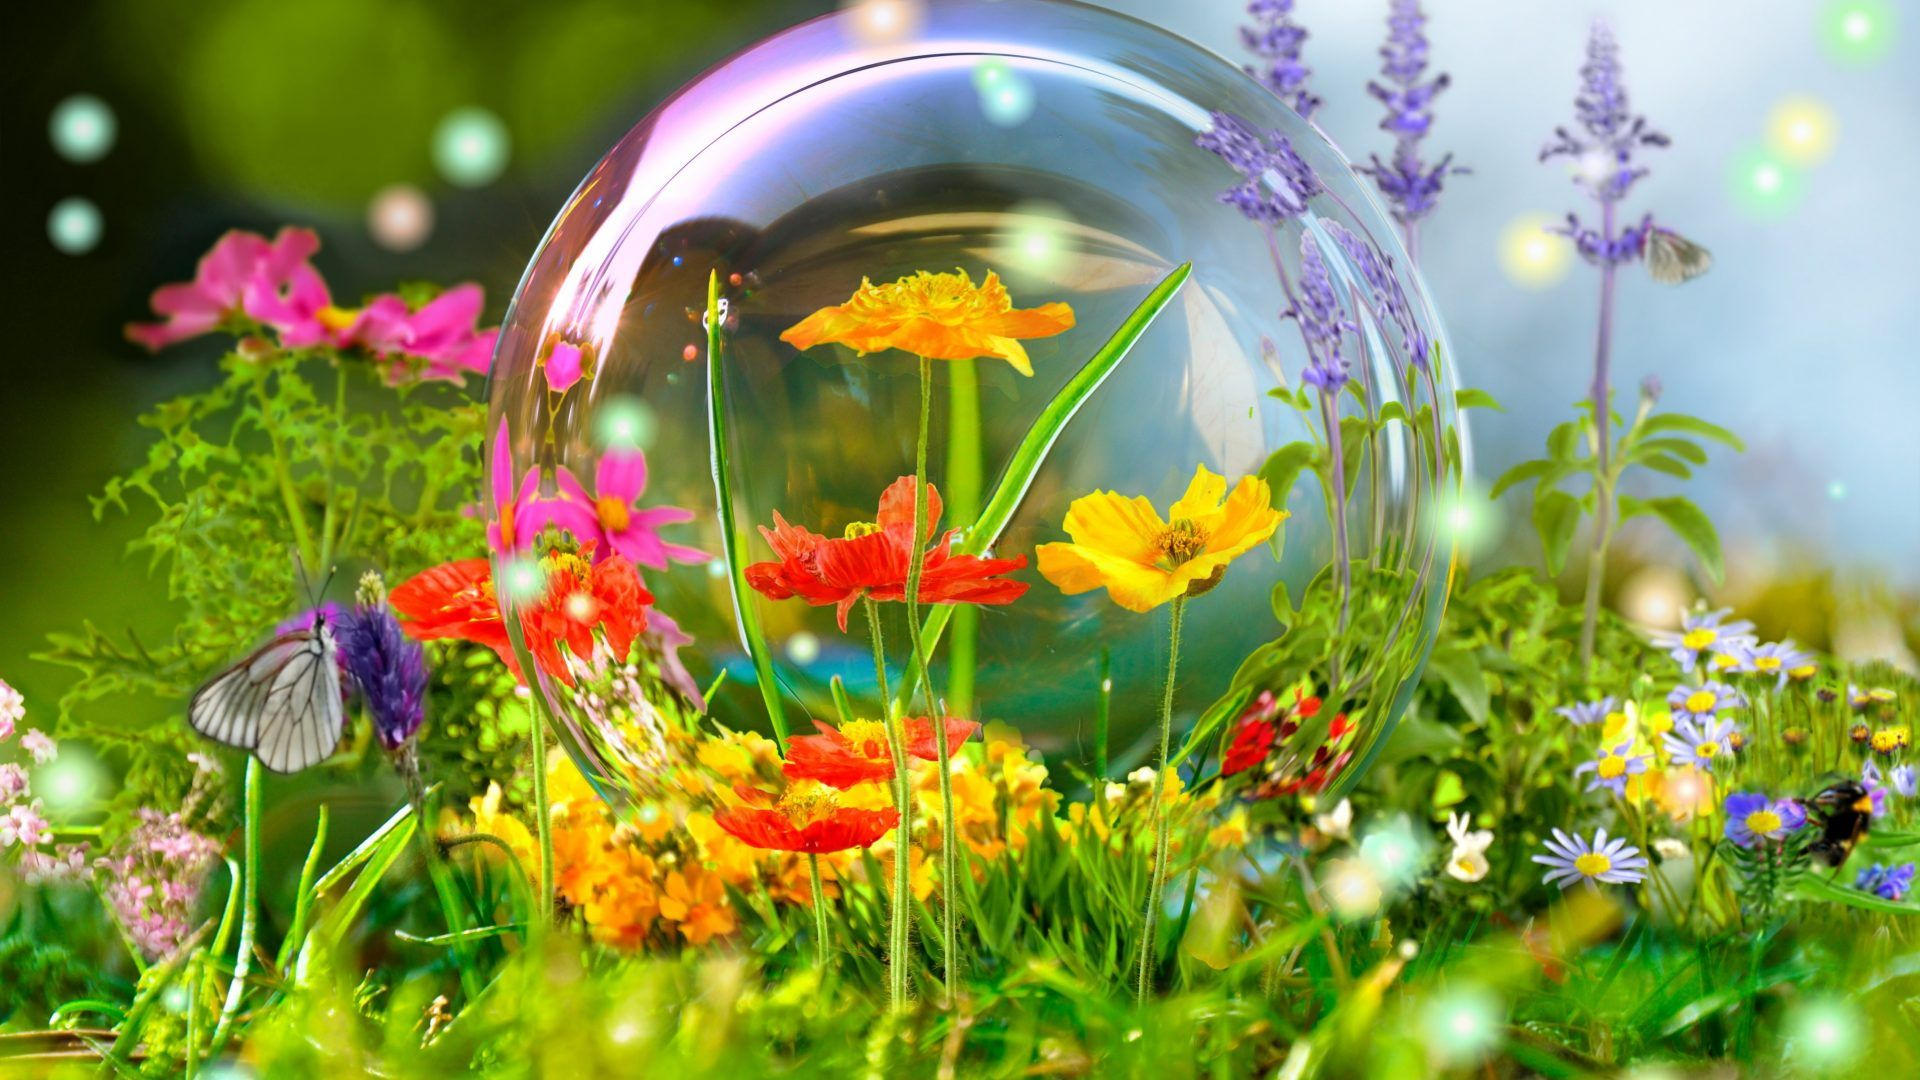 Flowers Wild Flowers Butterfly Colorful Forest Meadow Bubble Spring Gallery For Hd 16 9 Hig Wallpaper Nature Flowers Spring Flowers Wallpaper Flower Wallpaper